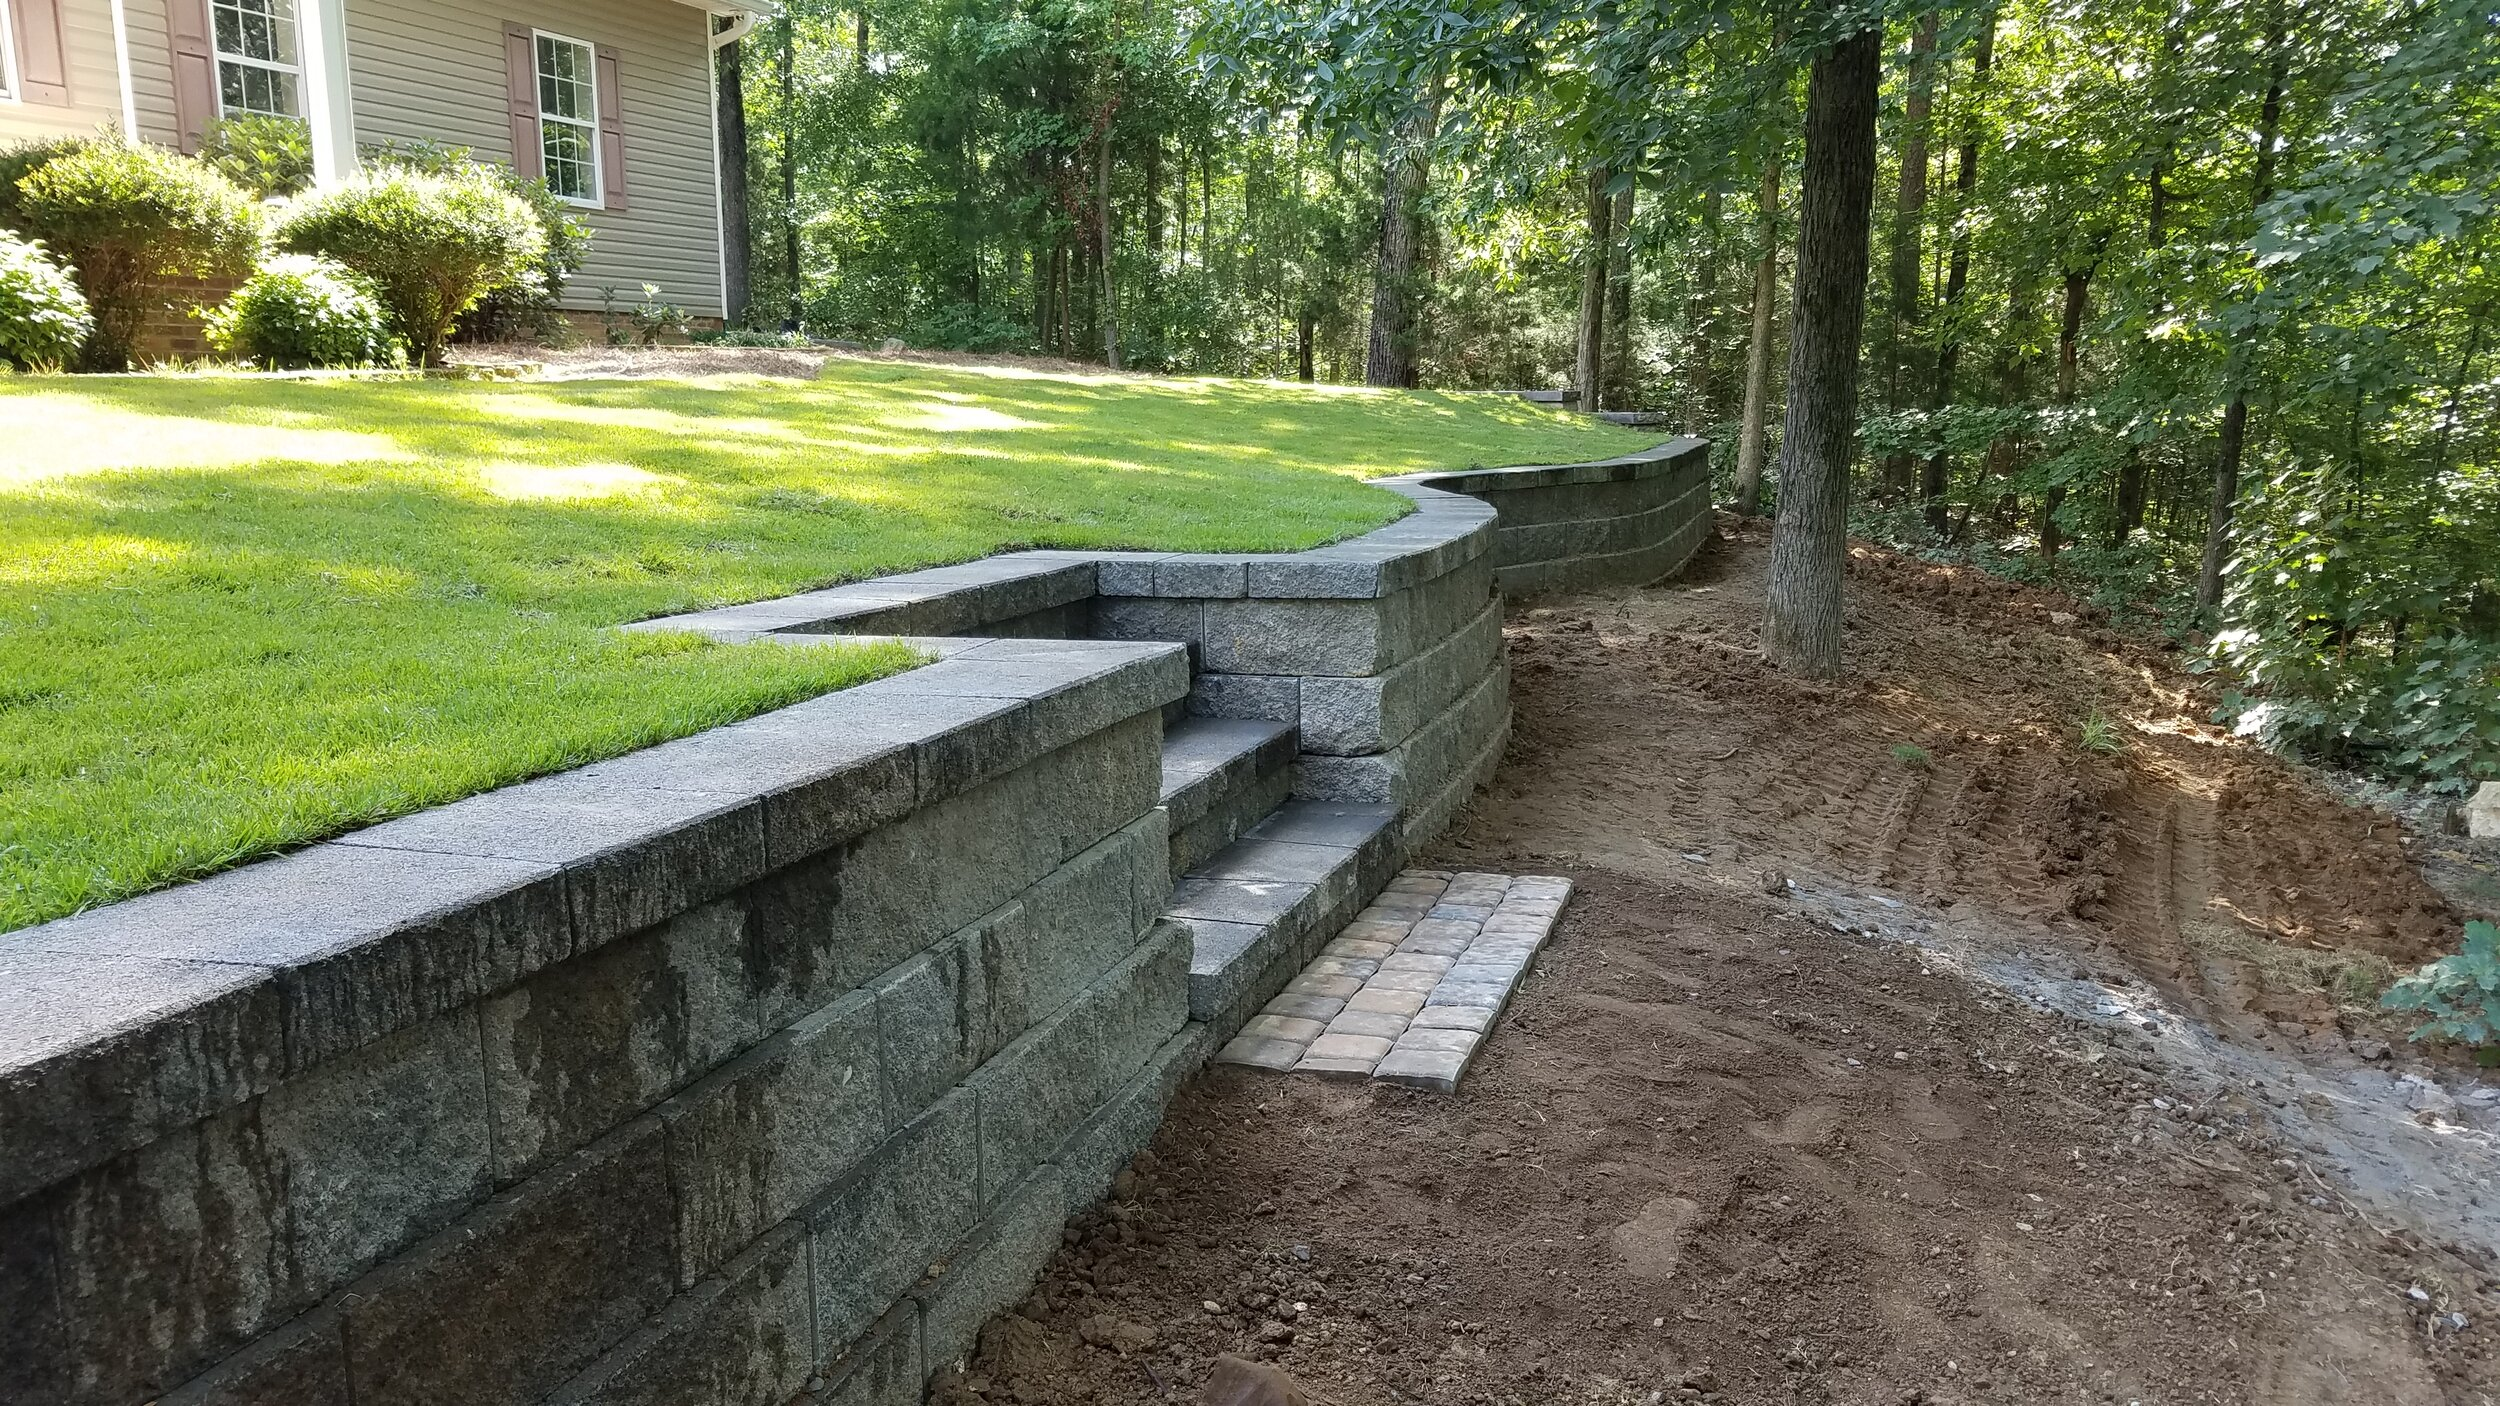 Get Retaining Wall On Sloped Backyard Background - HomeLooker